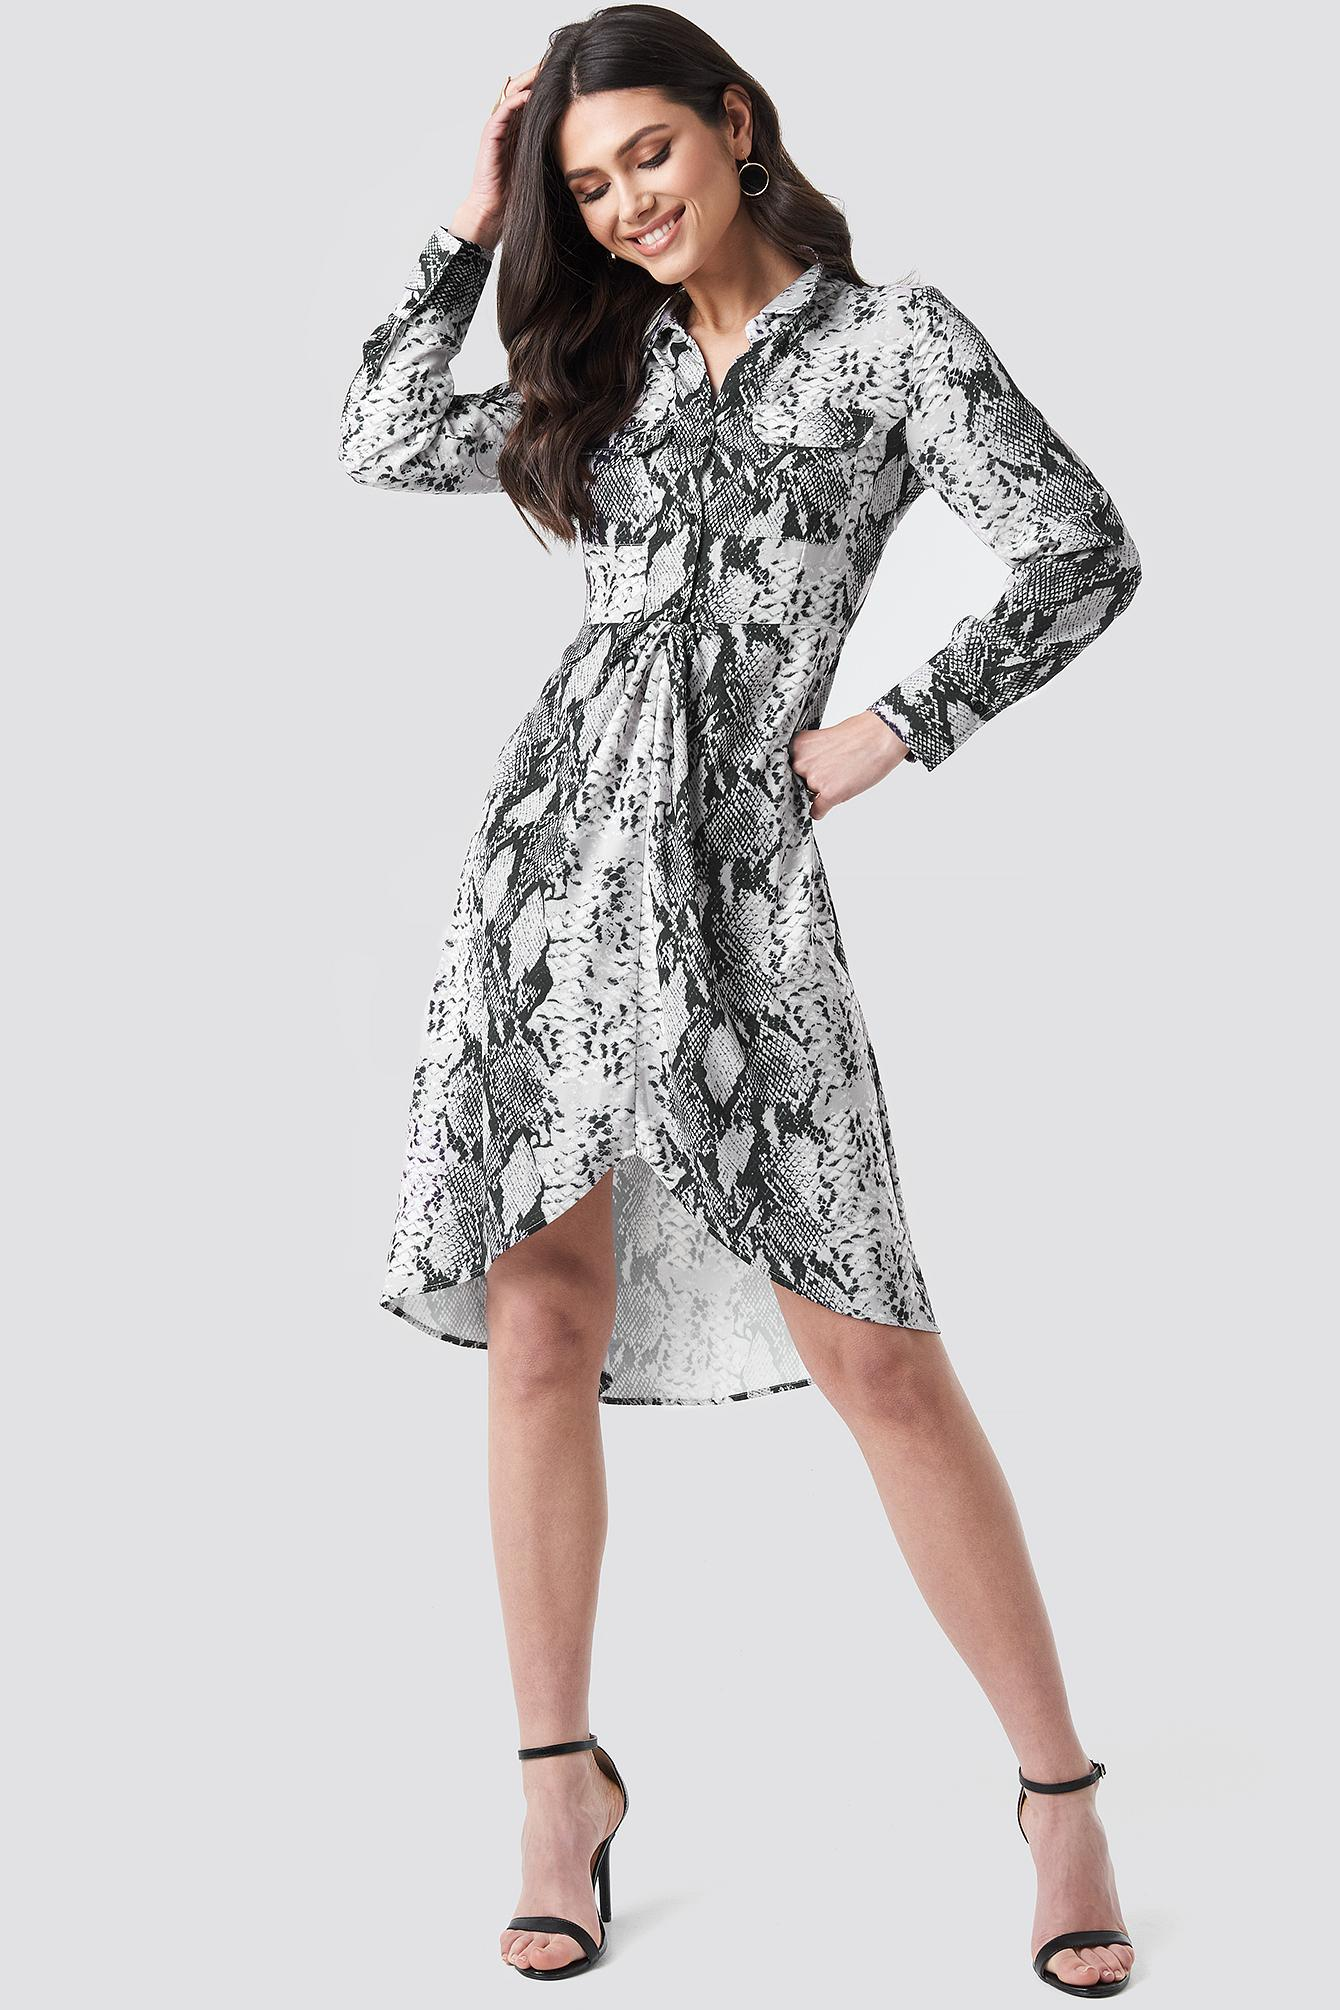 5a19f07ab8e6 Lyst - NA-KD Snake Printed Shirt Dress Grey in Gray